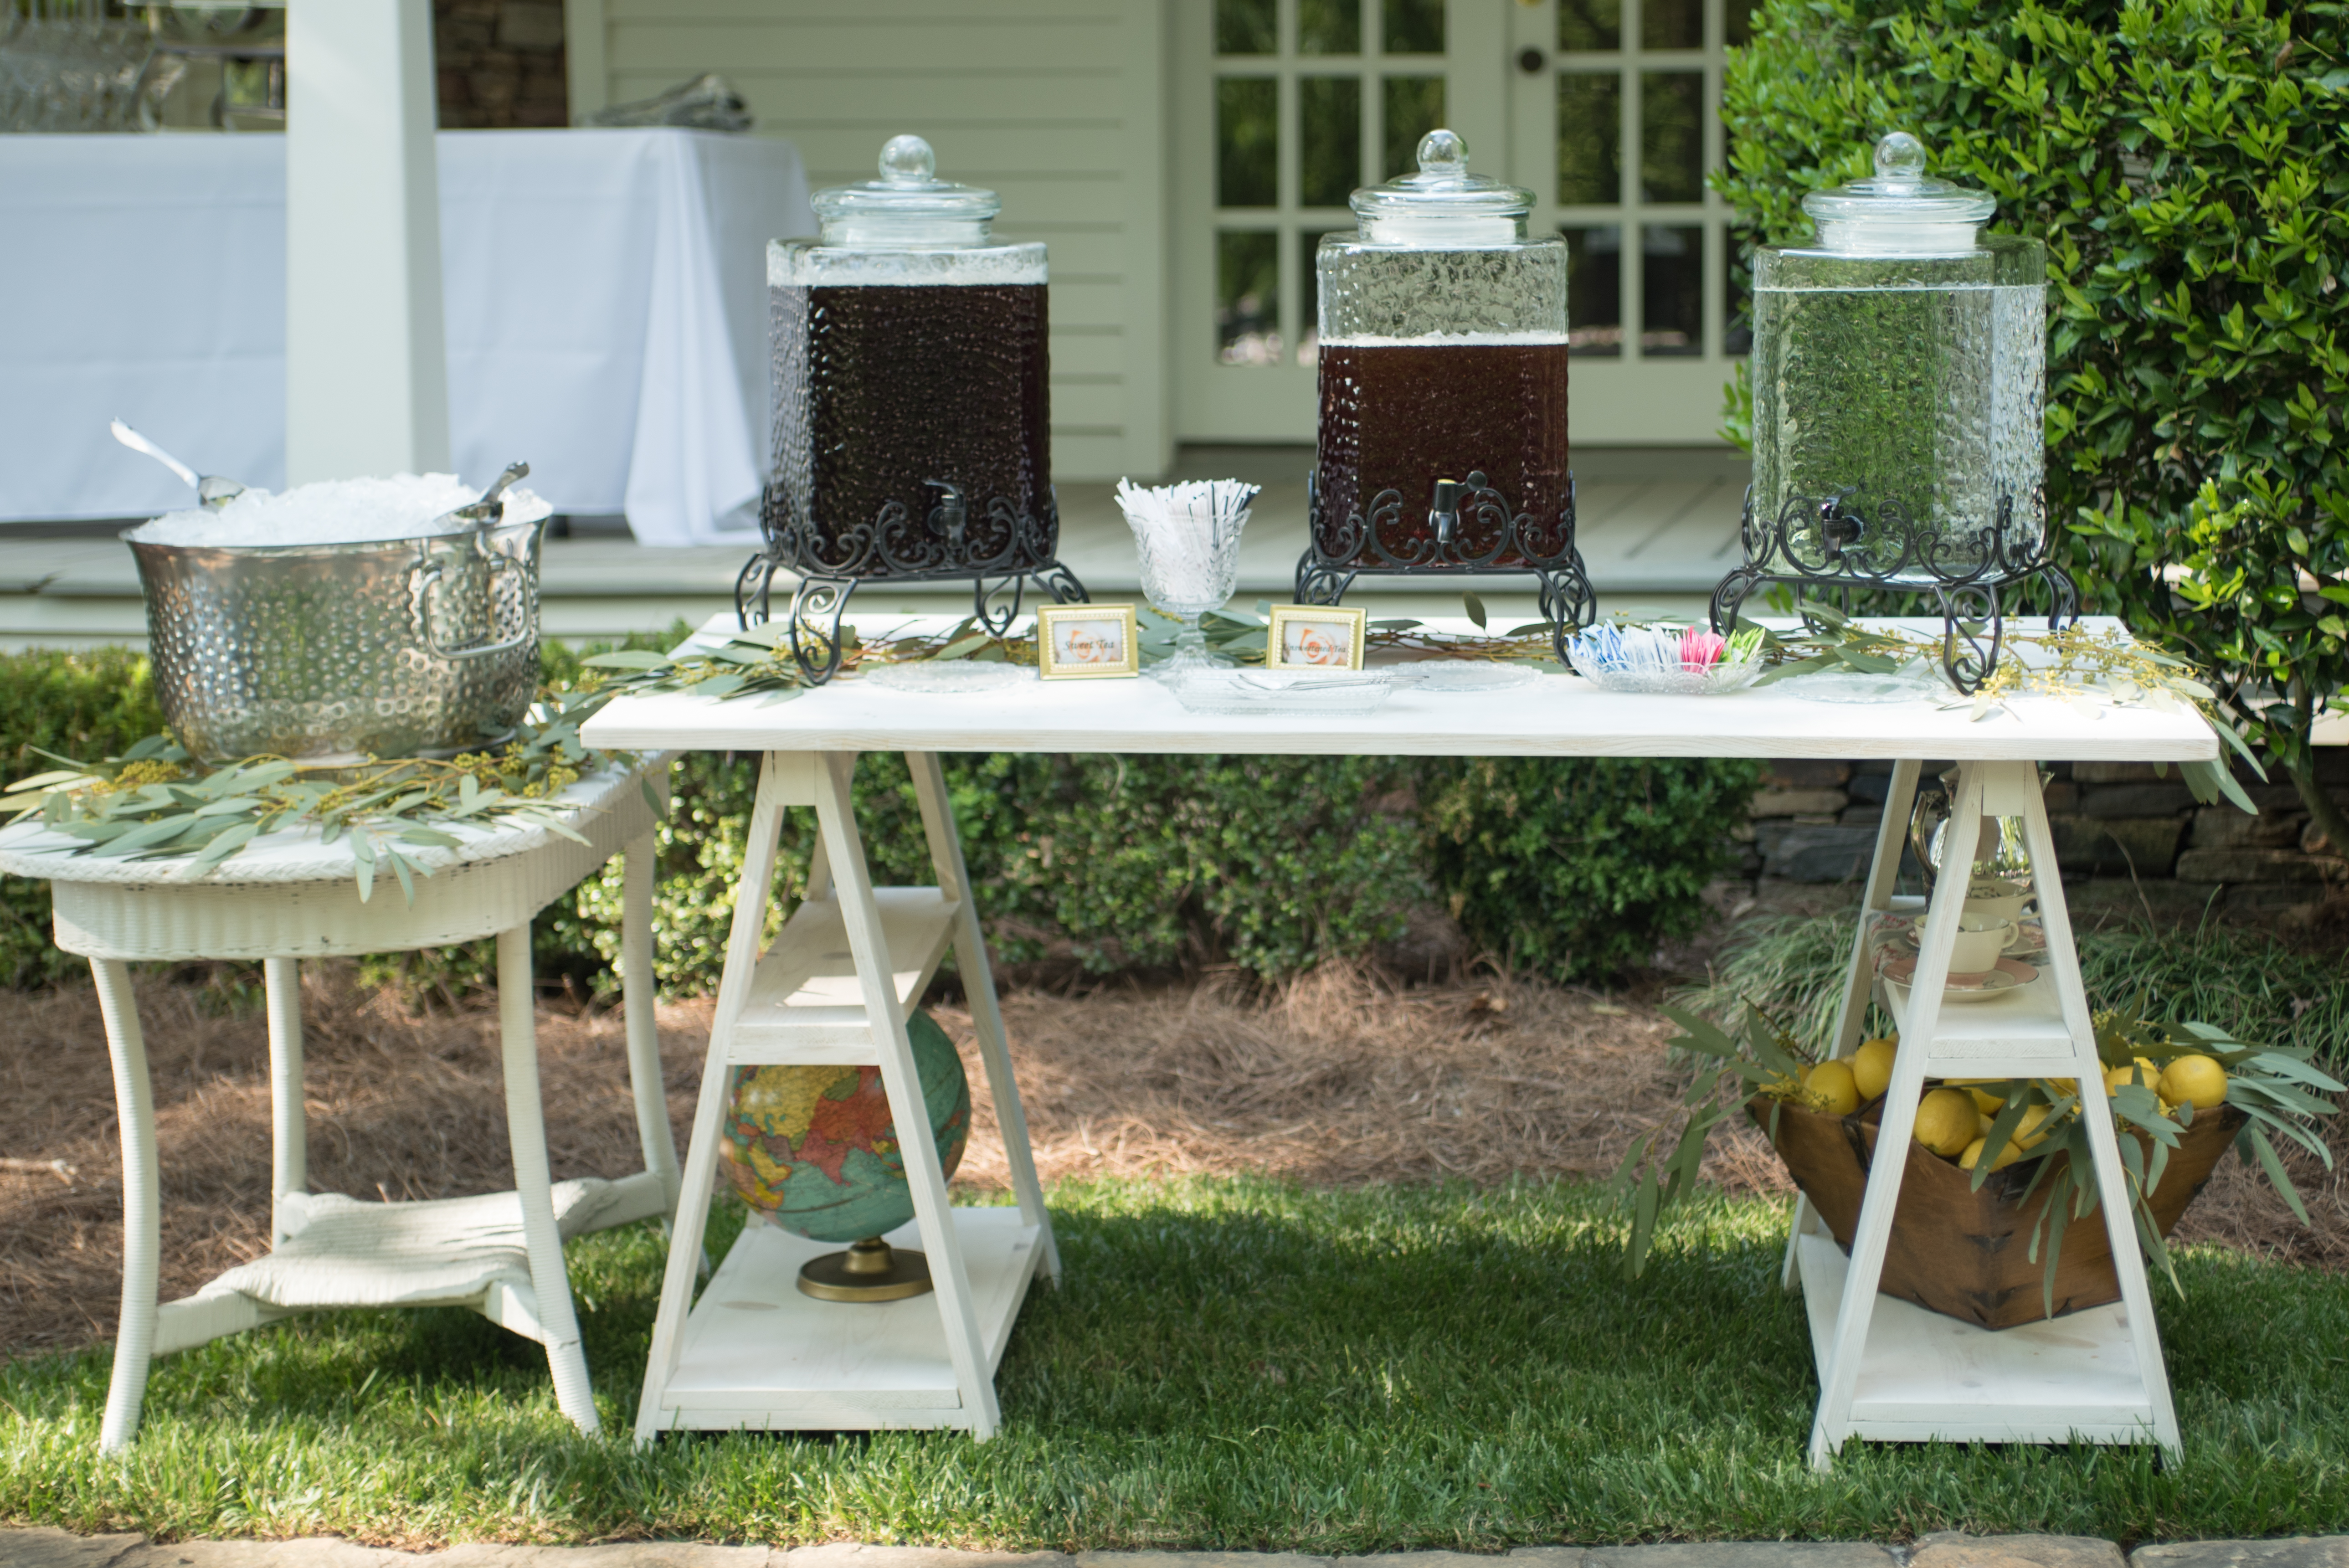 Wedding Hydration Stations Infused Water Recipes